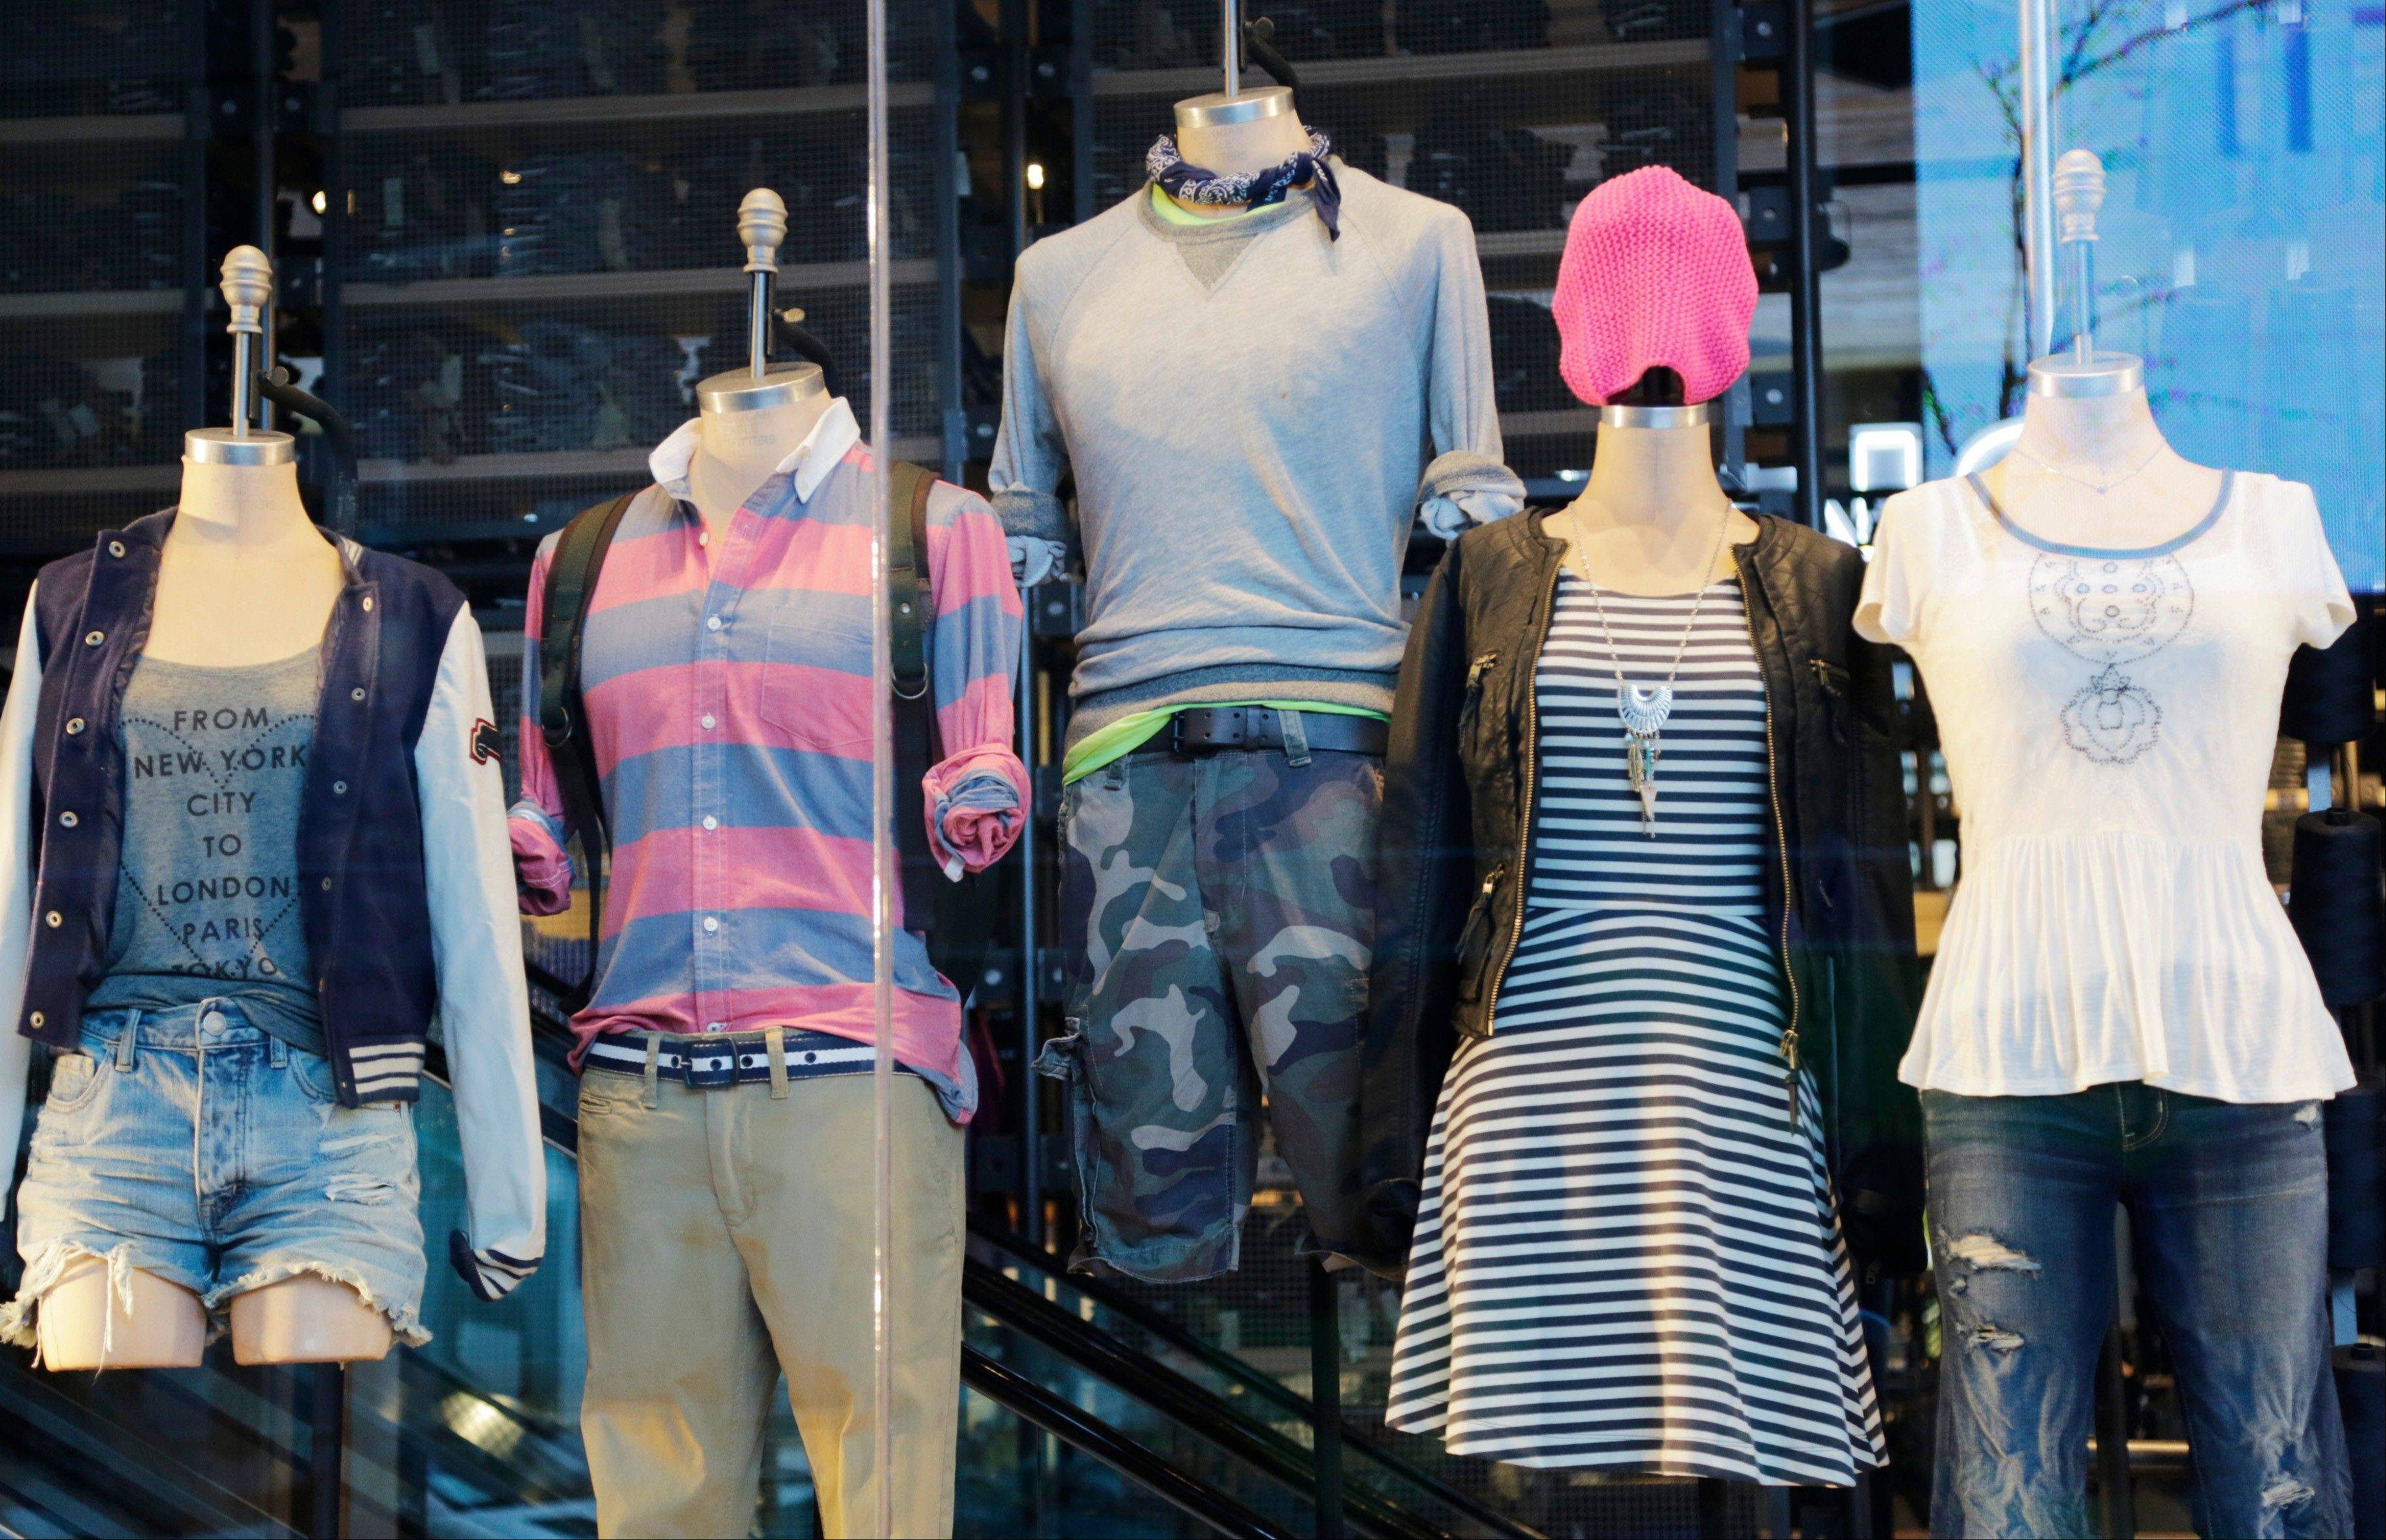 In this photo of July 31, 2013, back-to school fashions are displayed at American Eagle Outfitters in New York's Times Square.S hoppers, worried about their finances, showed they were more interested in buying discounted summer merchandise in July than in picking up new fall clothing for their children, according to figures released Thursday, Aug. 8, 2013.